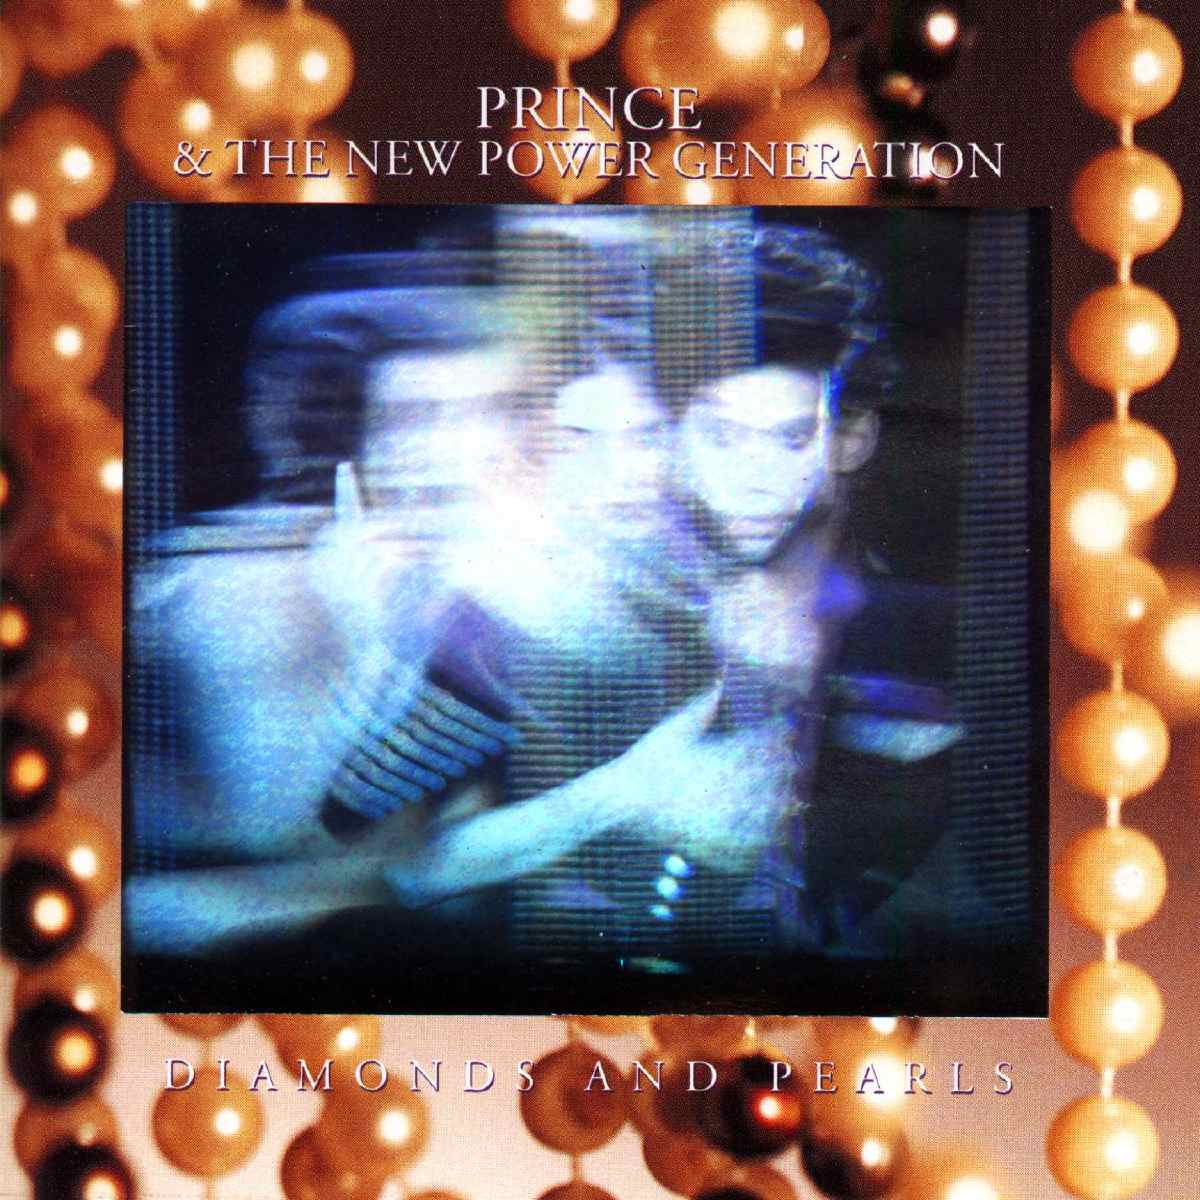 Insatiable by Prince & the New Power Generation